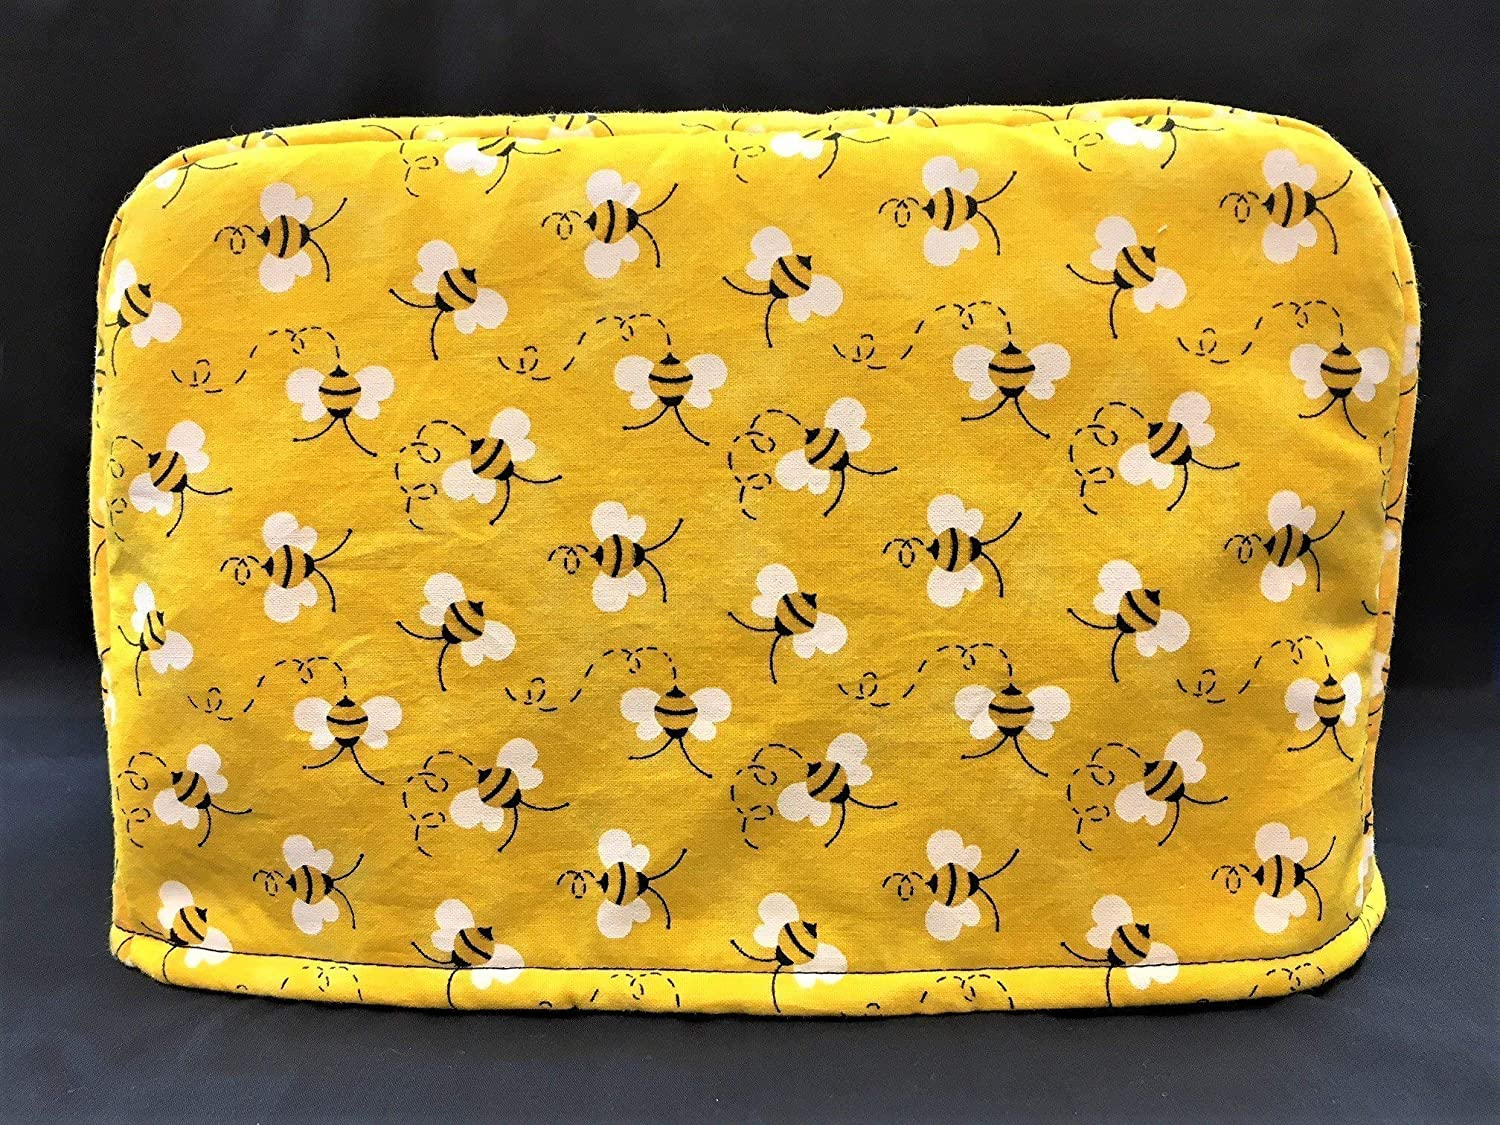 h w x 7.5 x 5.5 l Bumble Bees on Yellow Reversible 2 Slice Toaster Cover 11.5